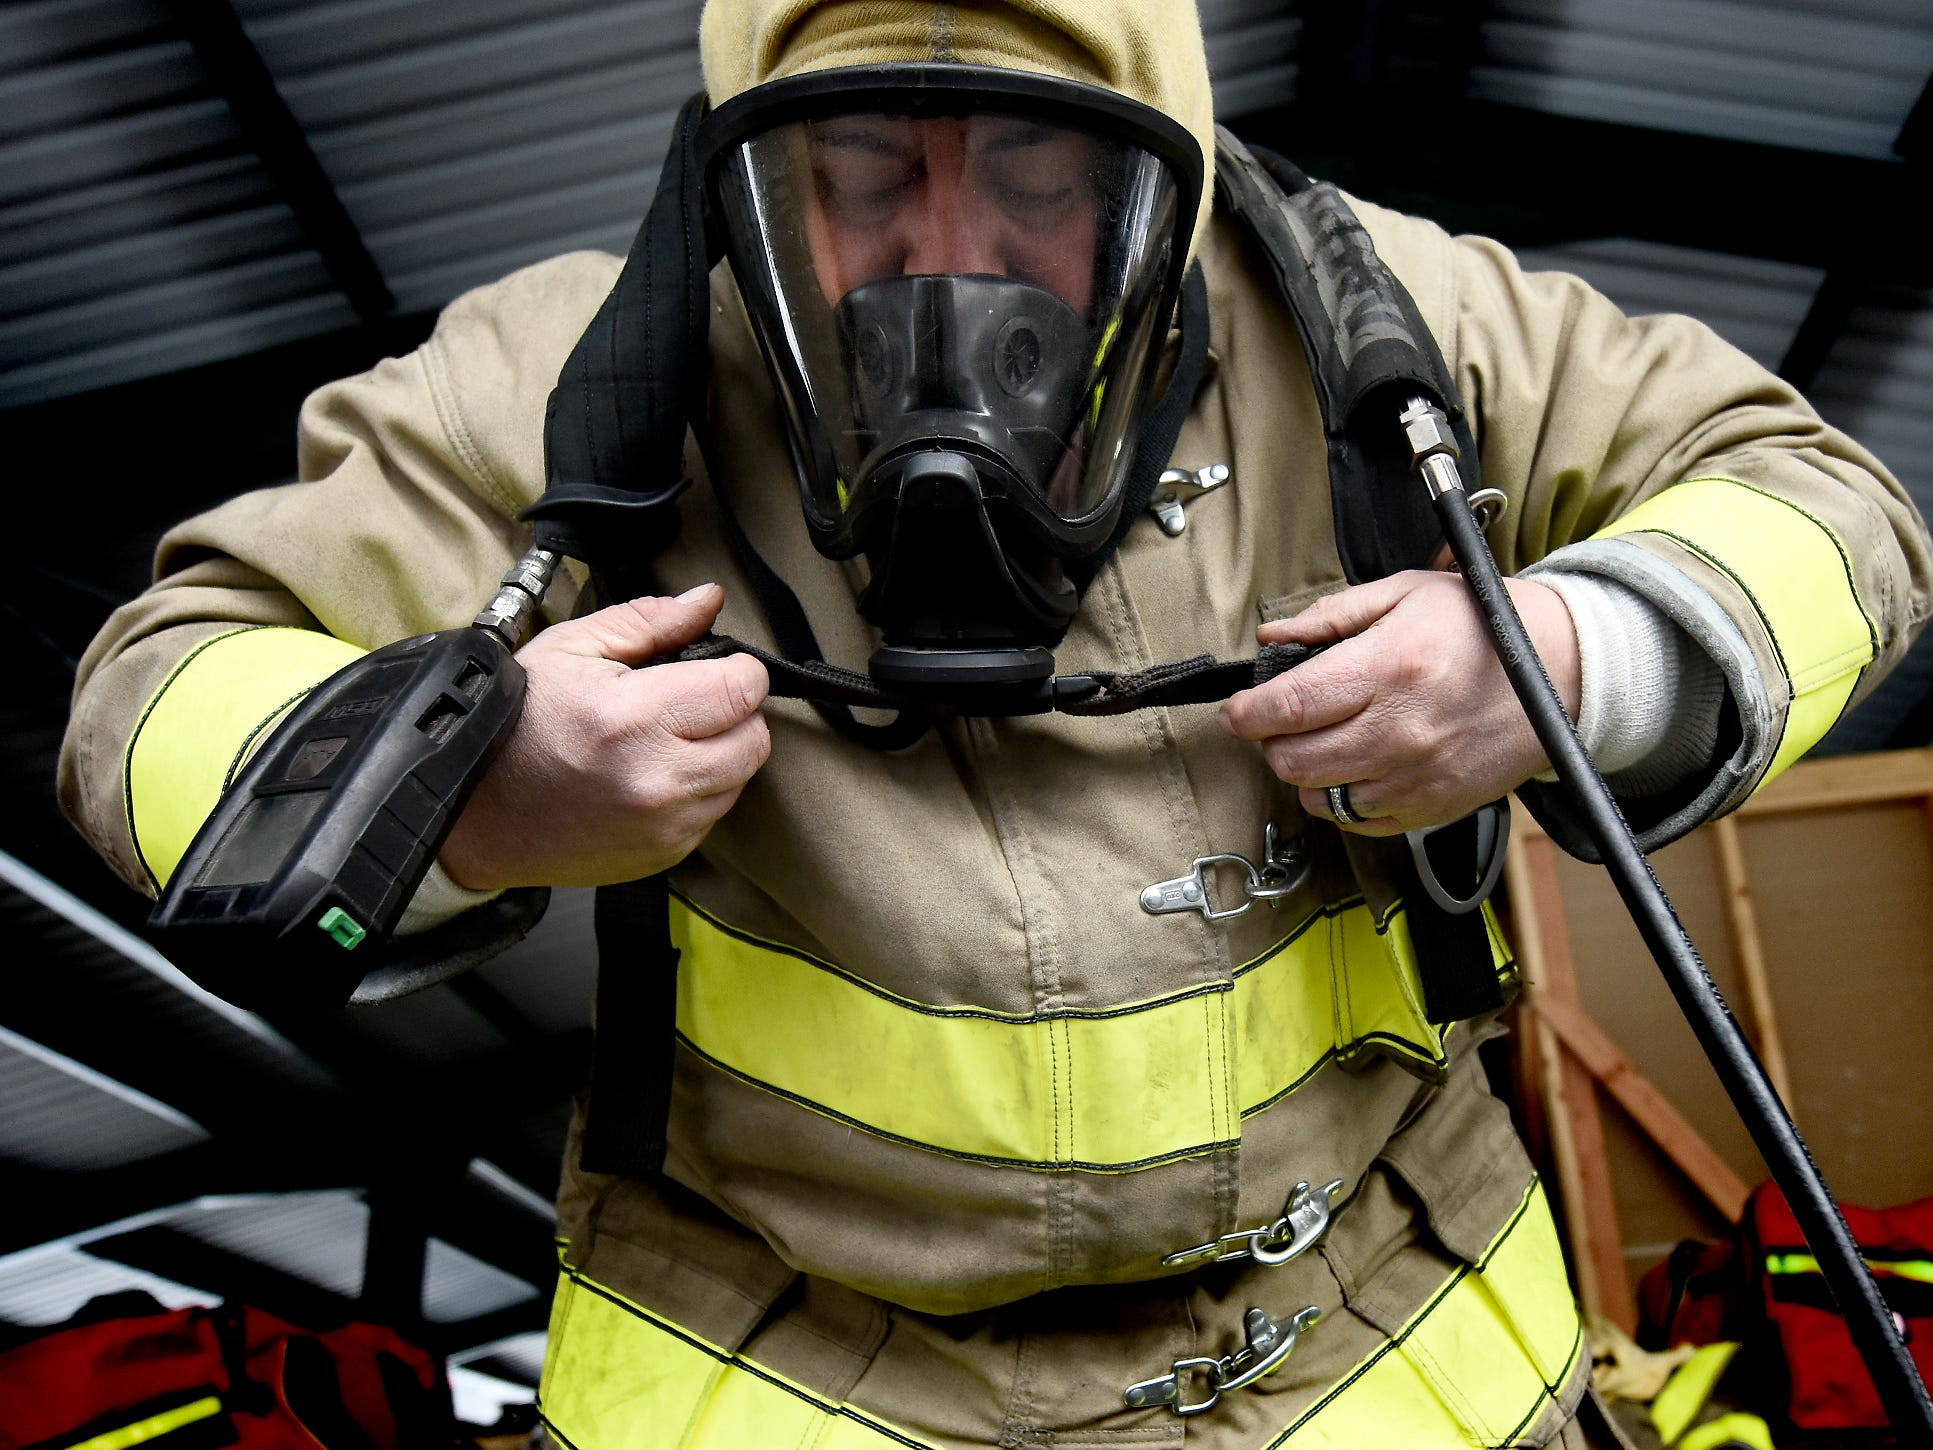 York County Prison corrections officer Juan Canales dons gear while preparing for a fire scenario at the York County Fire School during training there Friday, March 8, 2019. Members of the prison's 30-member Fire Emergency Response Team were completing a 40-hour fire training course at the school. The team is designed to control fire emergencies onsite prior to the arrival of firefighters. Bill Kalina photo